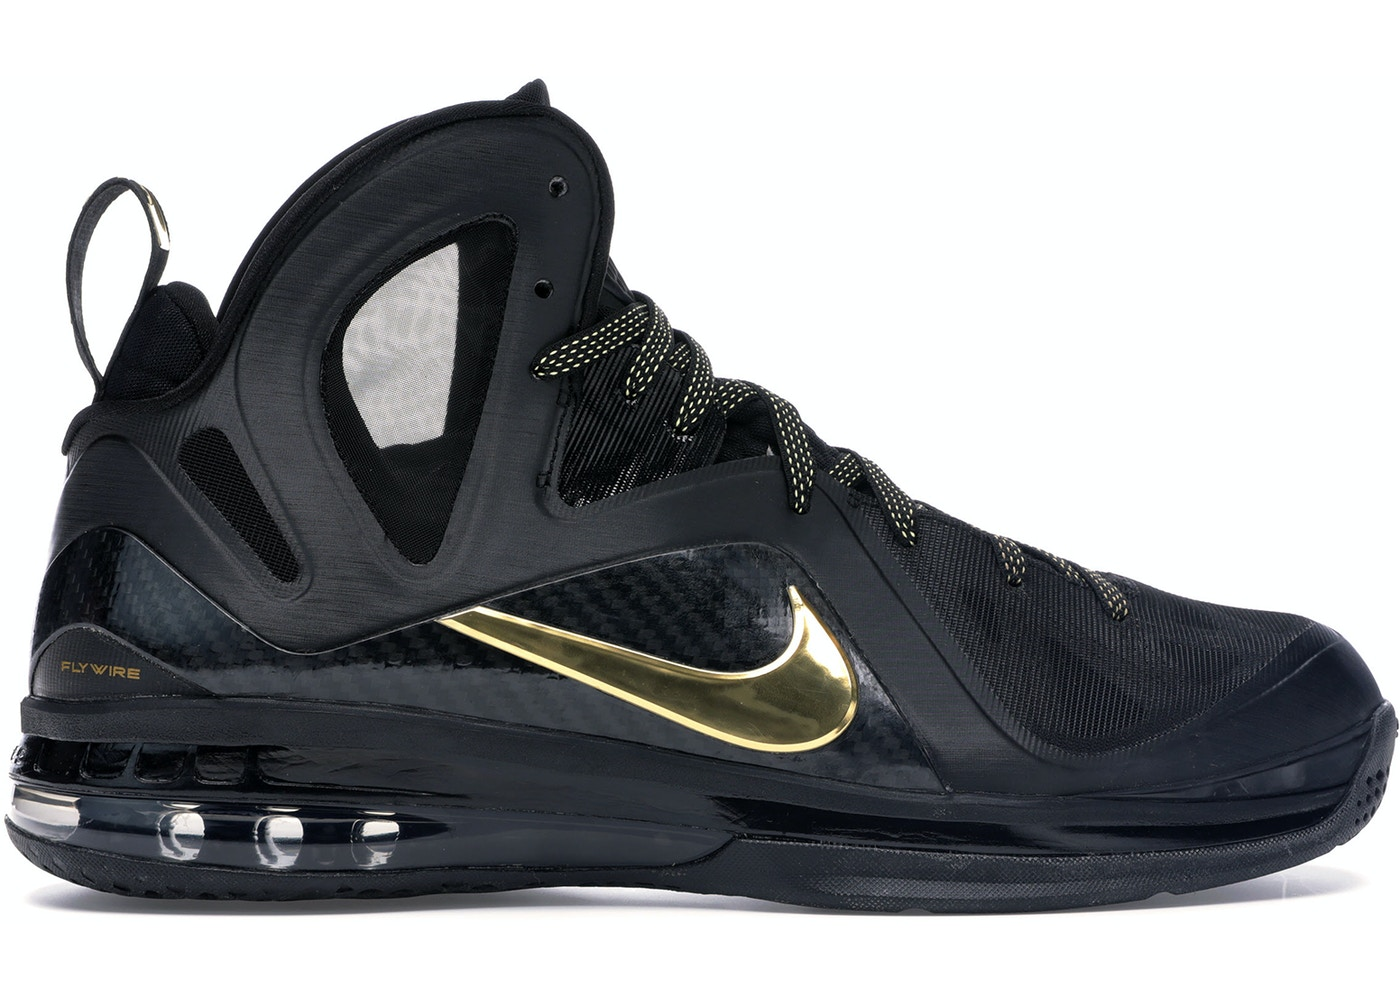 hot sale online e9e2e 90402 LeBron 9 PS Elite Away - 516958-002